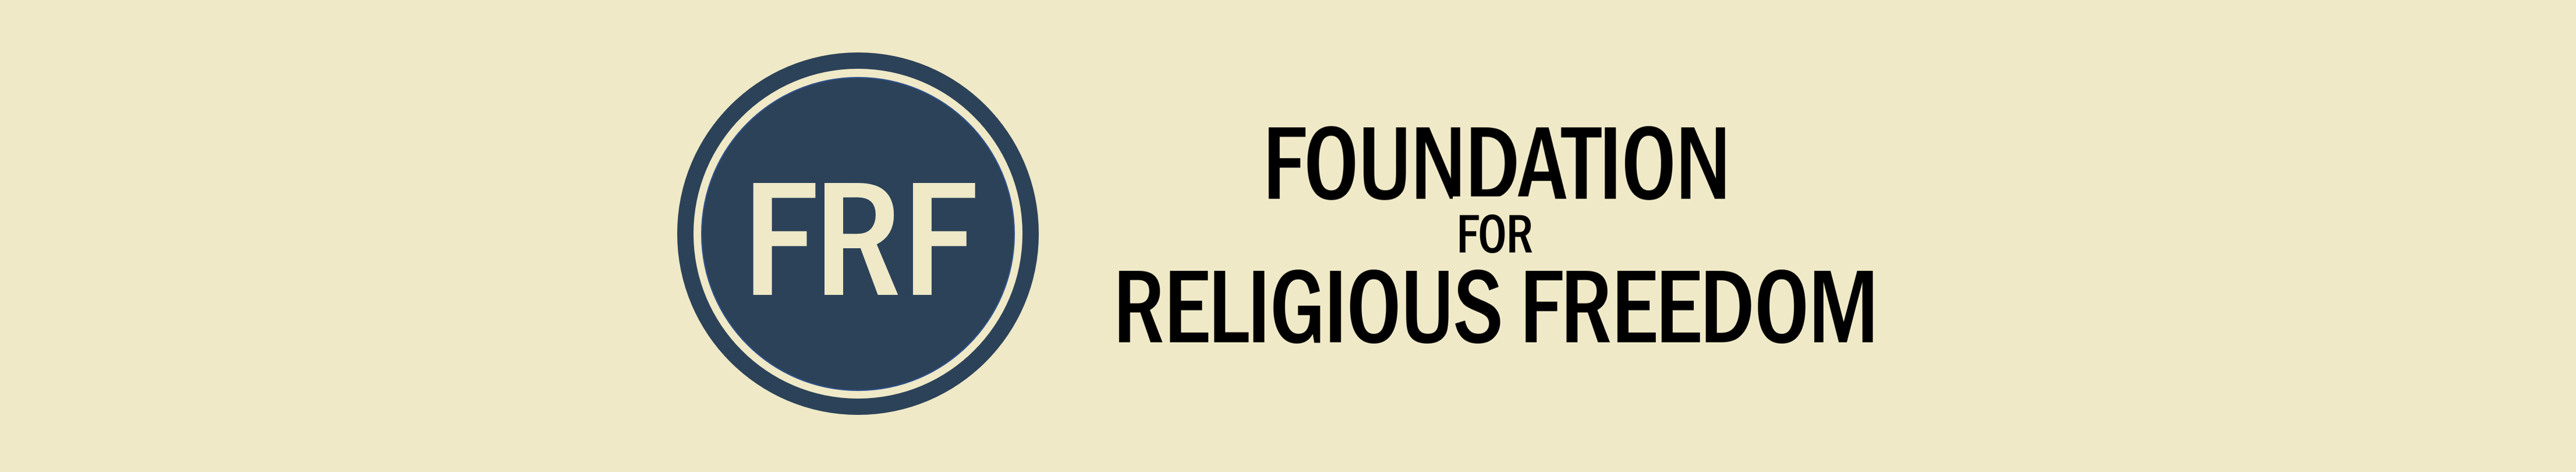 FOUNDATION FOR RELIGIOUS FREEDOM